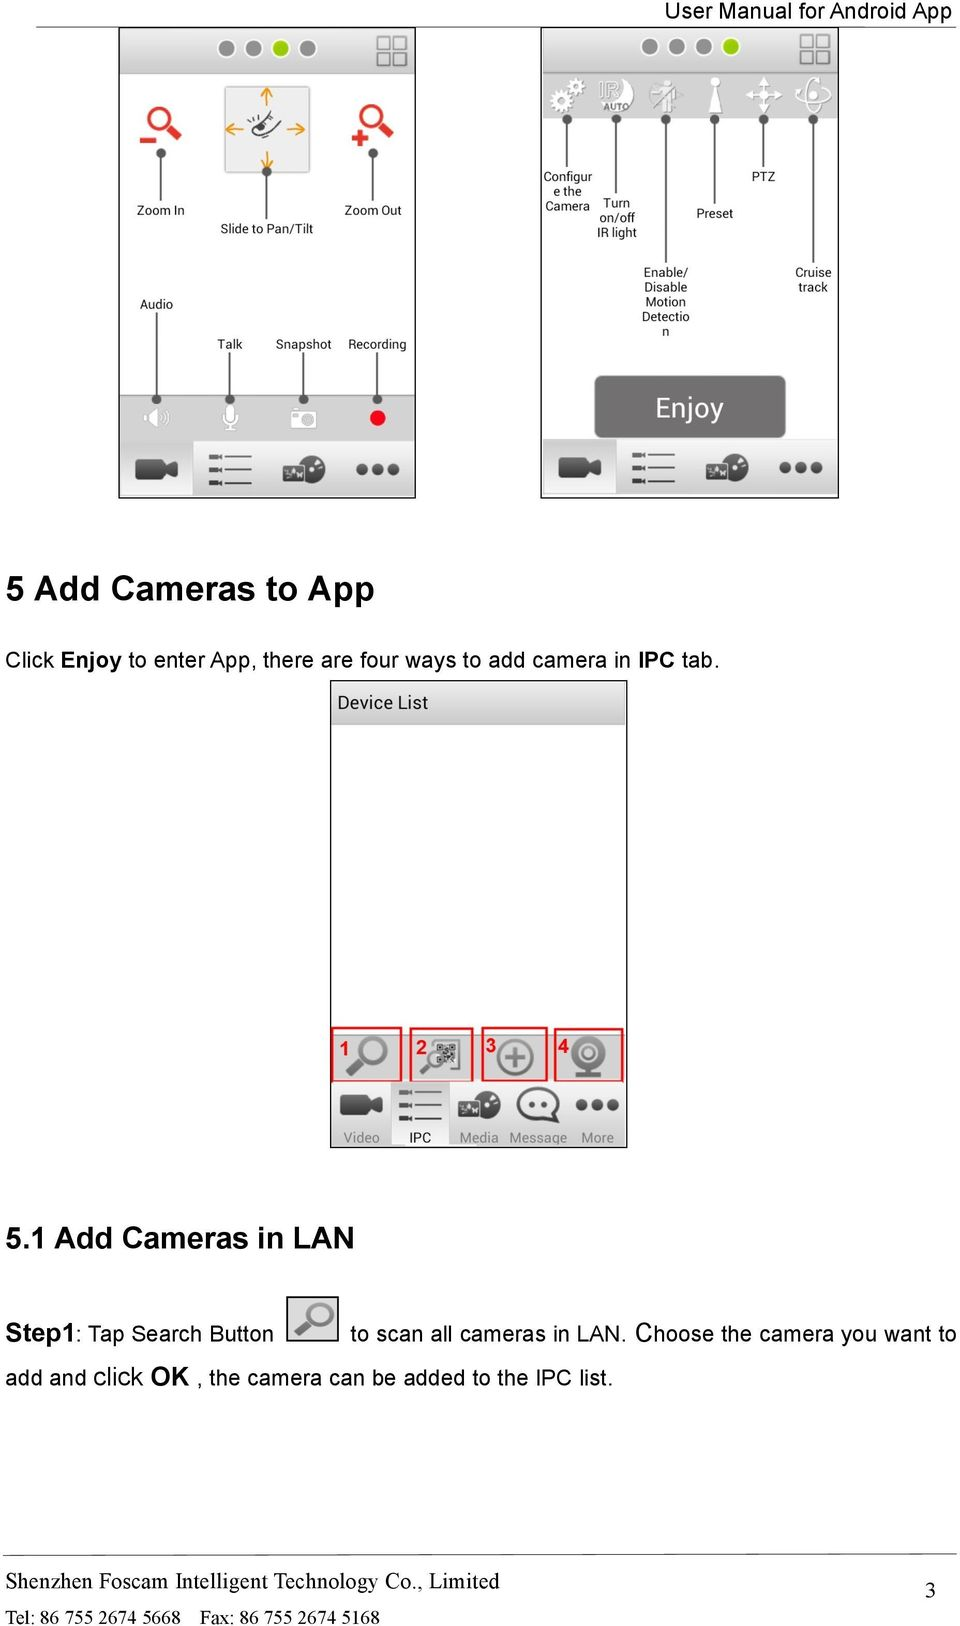 1 Add Cameras in LAN Step1: Tap Search Button to scan all